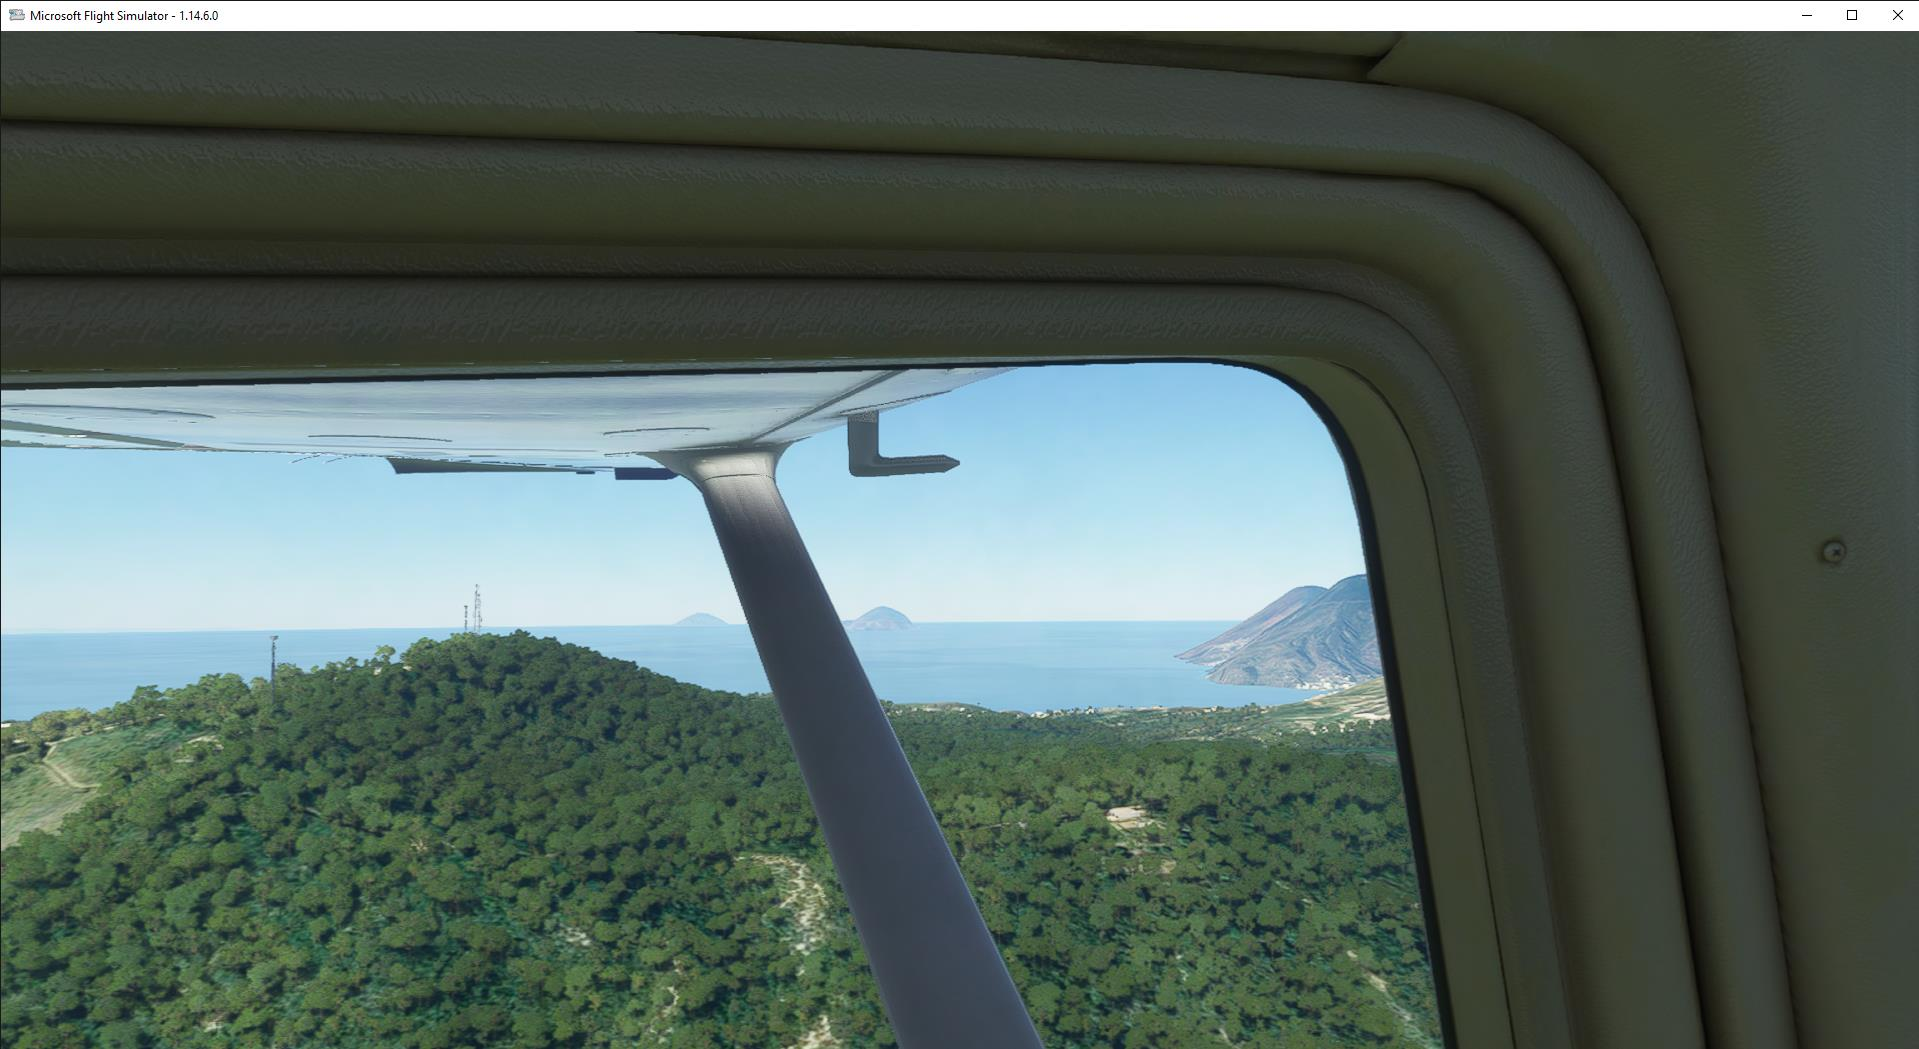 https://vivendobyte.blob.core.windows.net/59034/Microsoft Flight Simulator - 1.14.6.0 05_04_2021 22_10_54.jpg